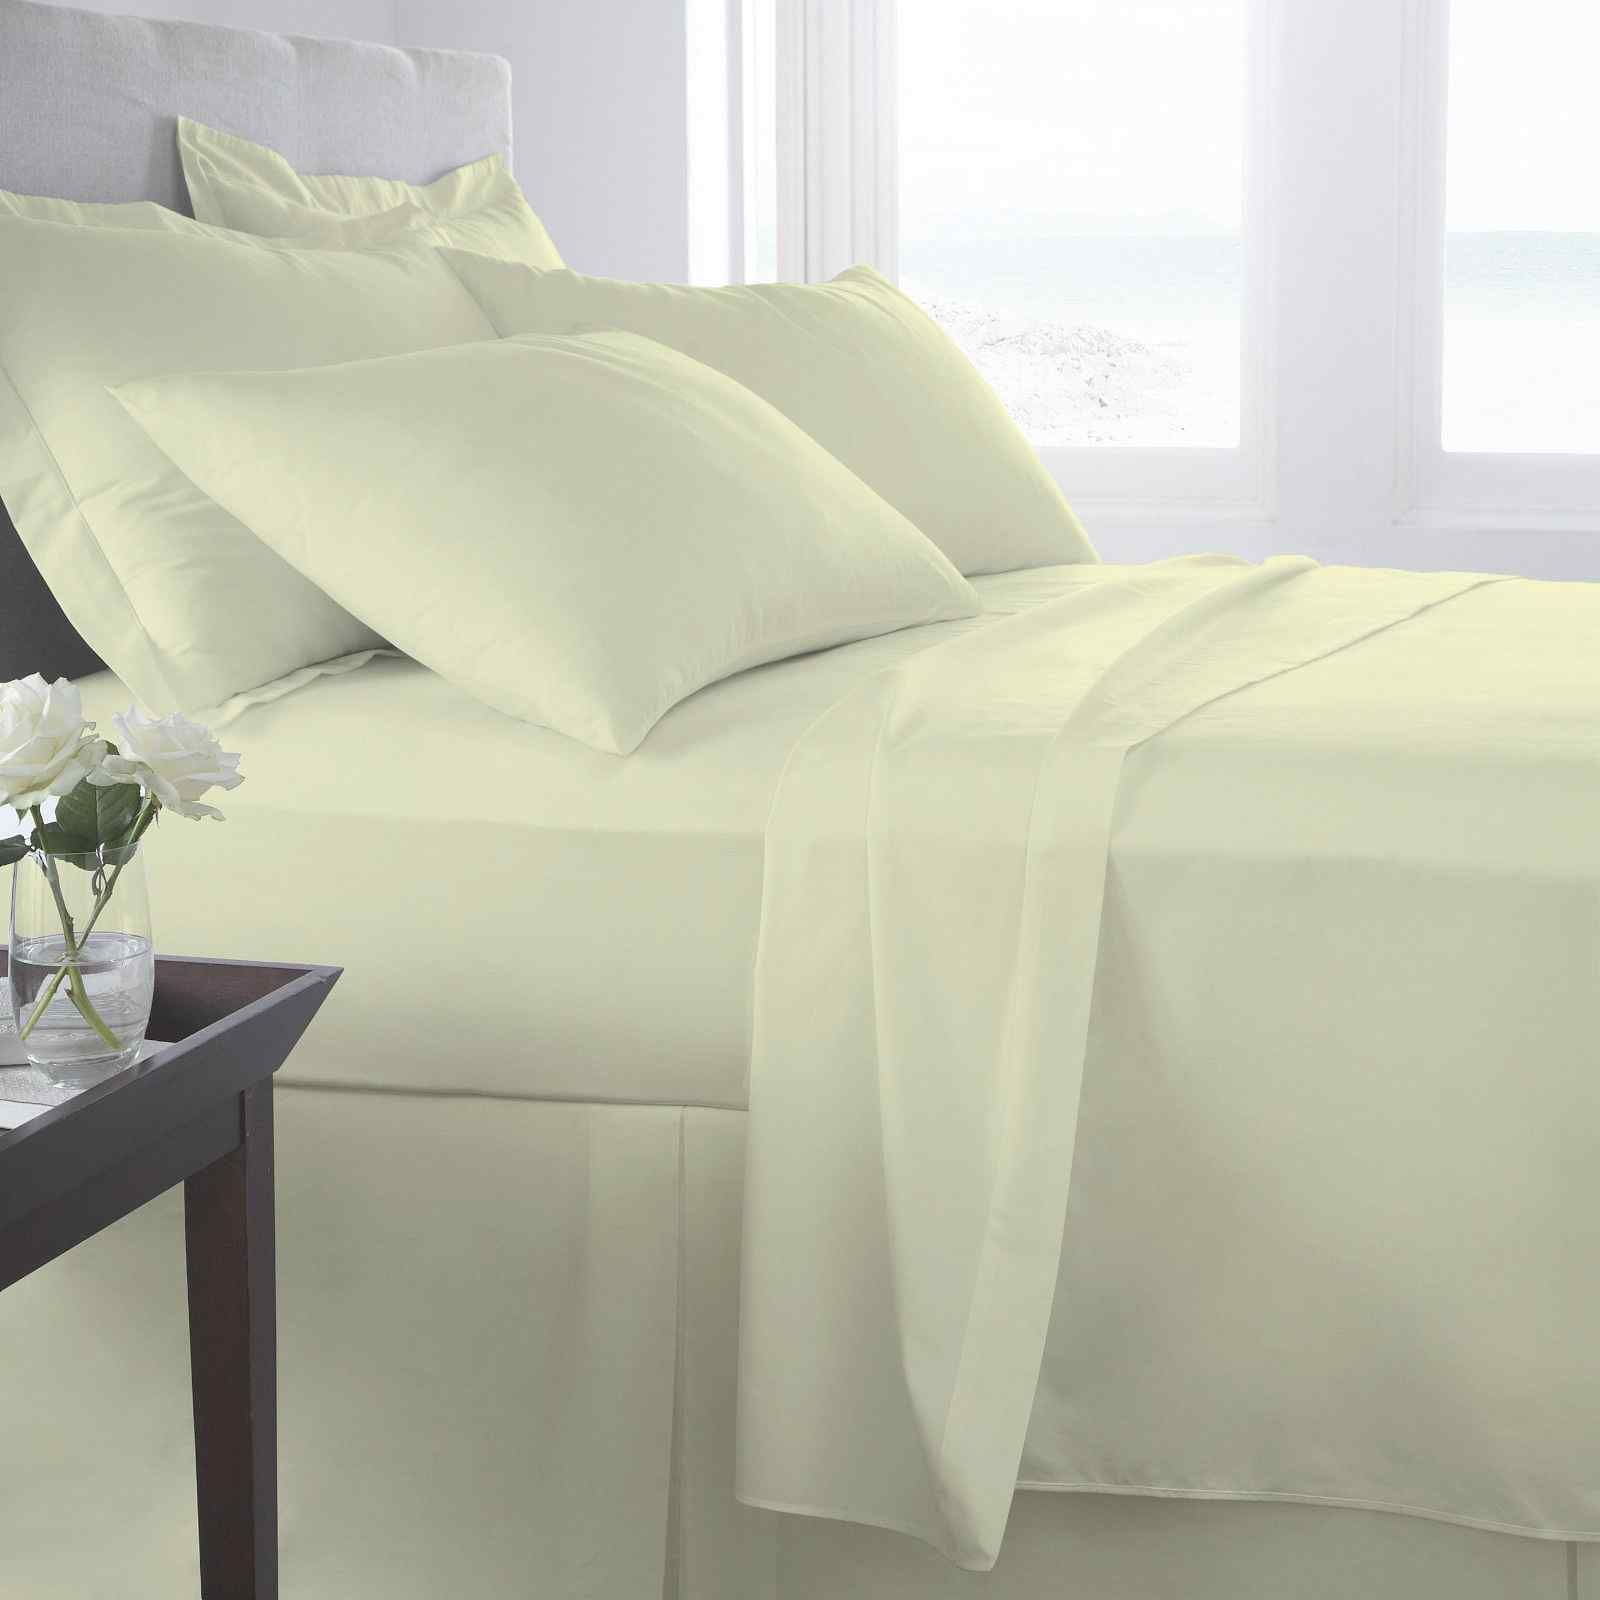 PLAIN FITTED SHEETS Linen Poly Cotton Bedding Bed Fitted Sheet Lime green,2 SIZE